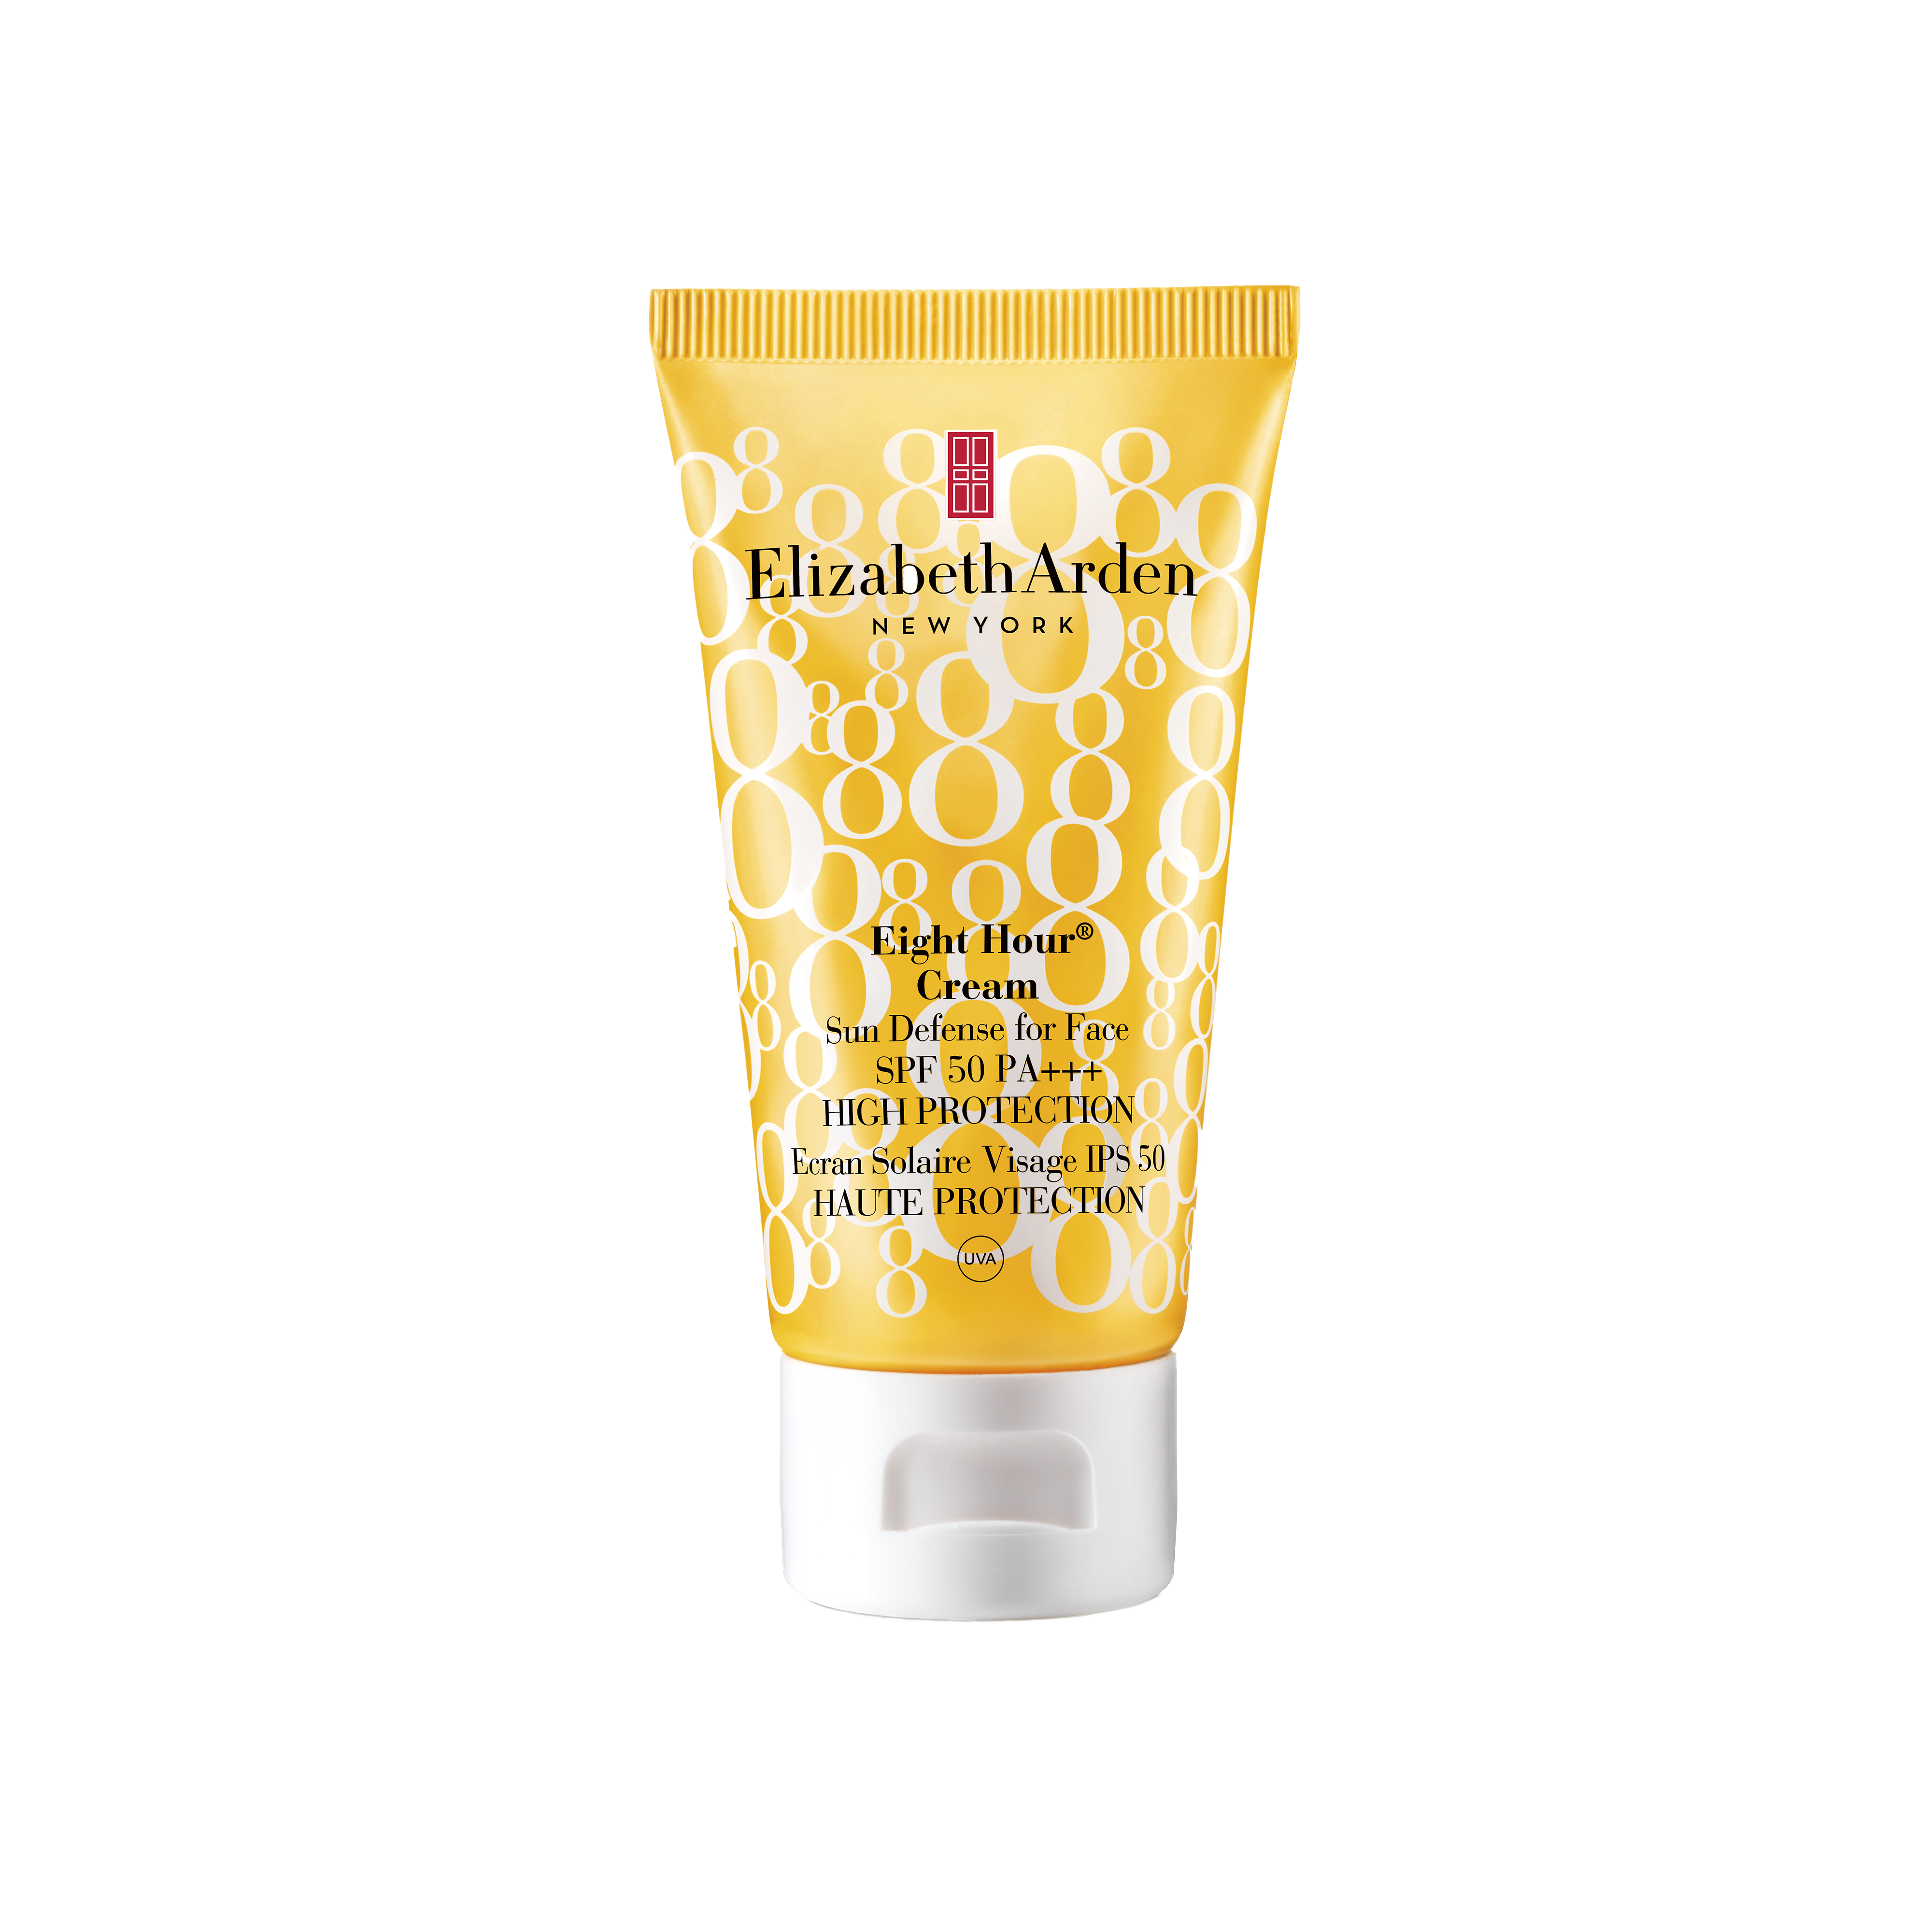 Eight Hour® Cream Sun Defense for Face SPF 50